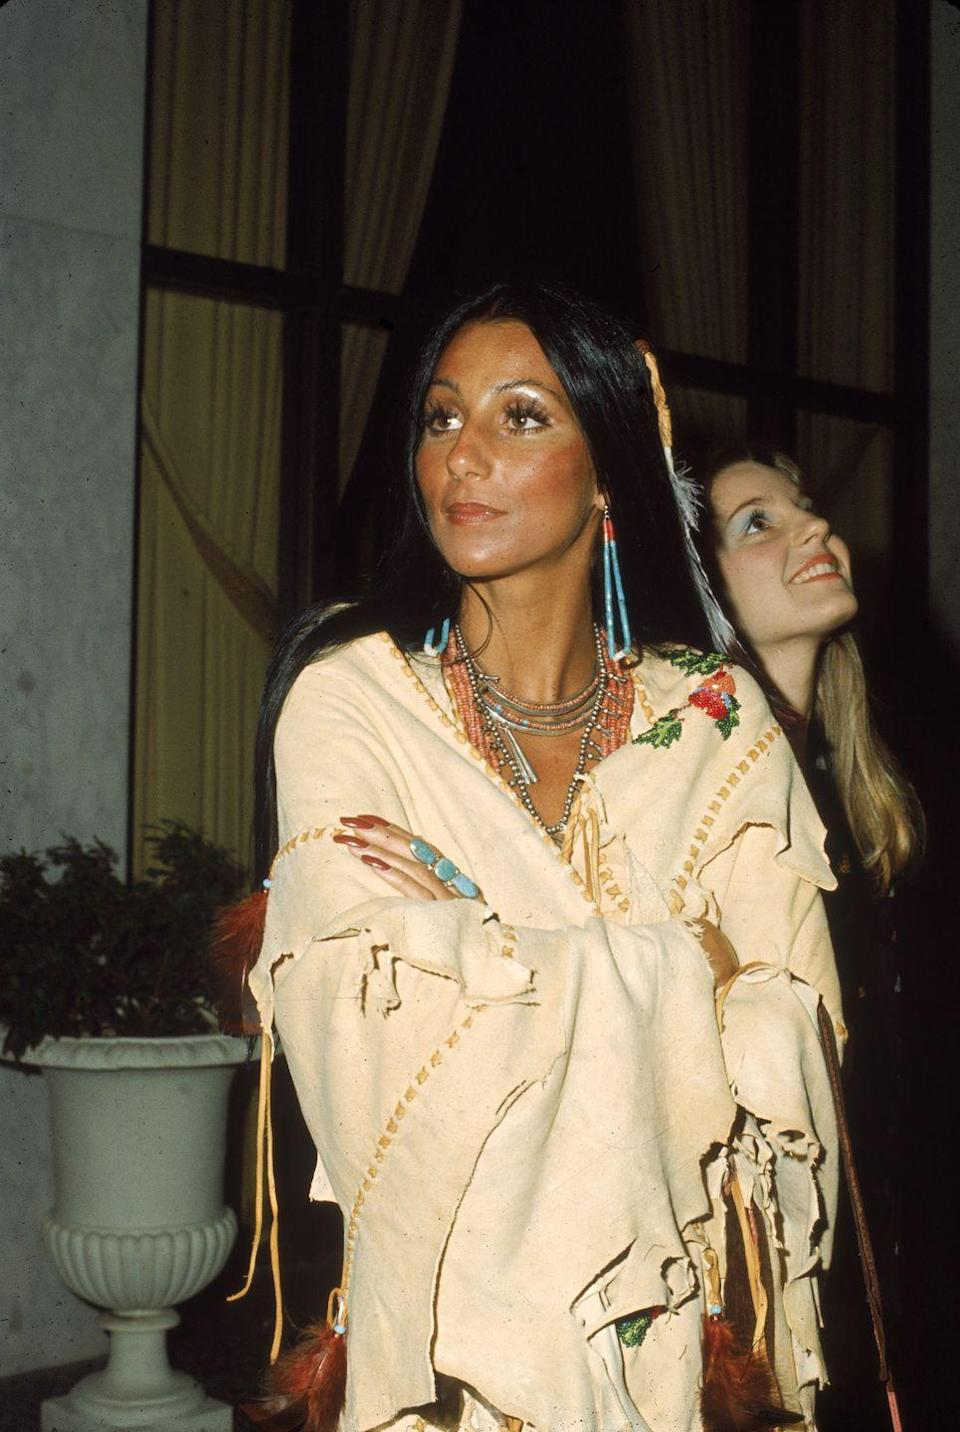 <p>Attending the premiere of <em>Last Tango in Paris</em> in an embroidered poncho and turquoise jewelry. </p>